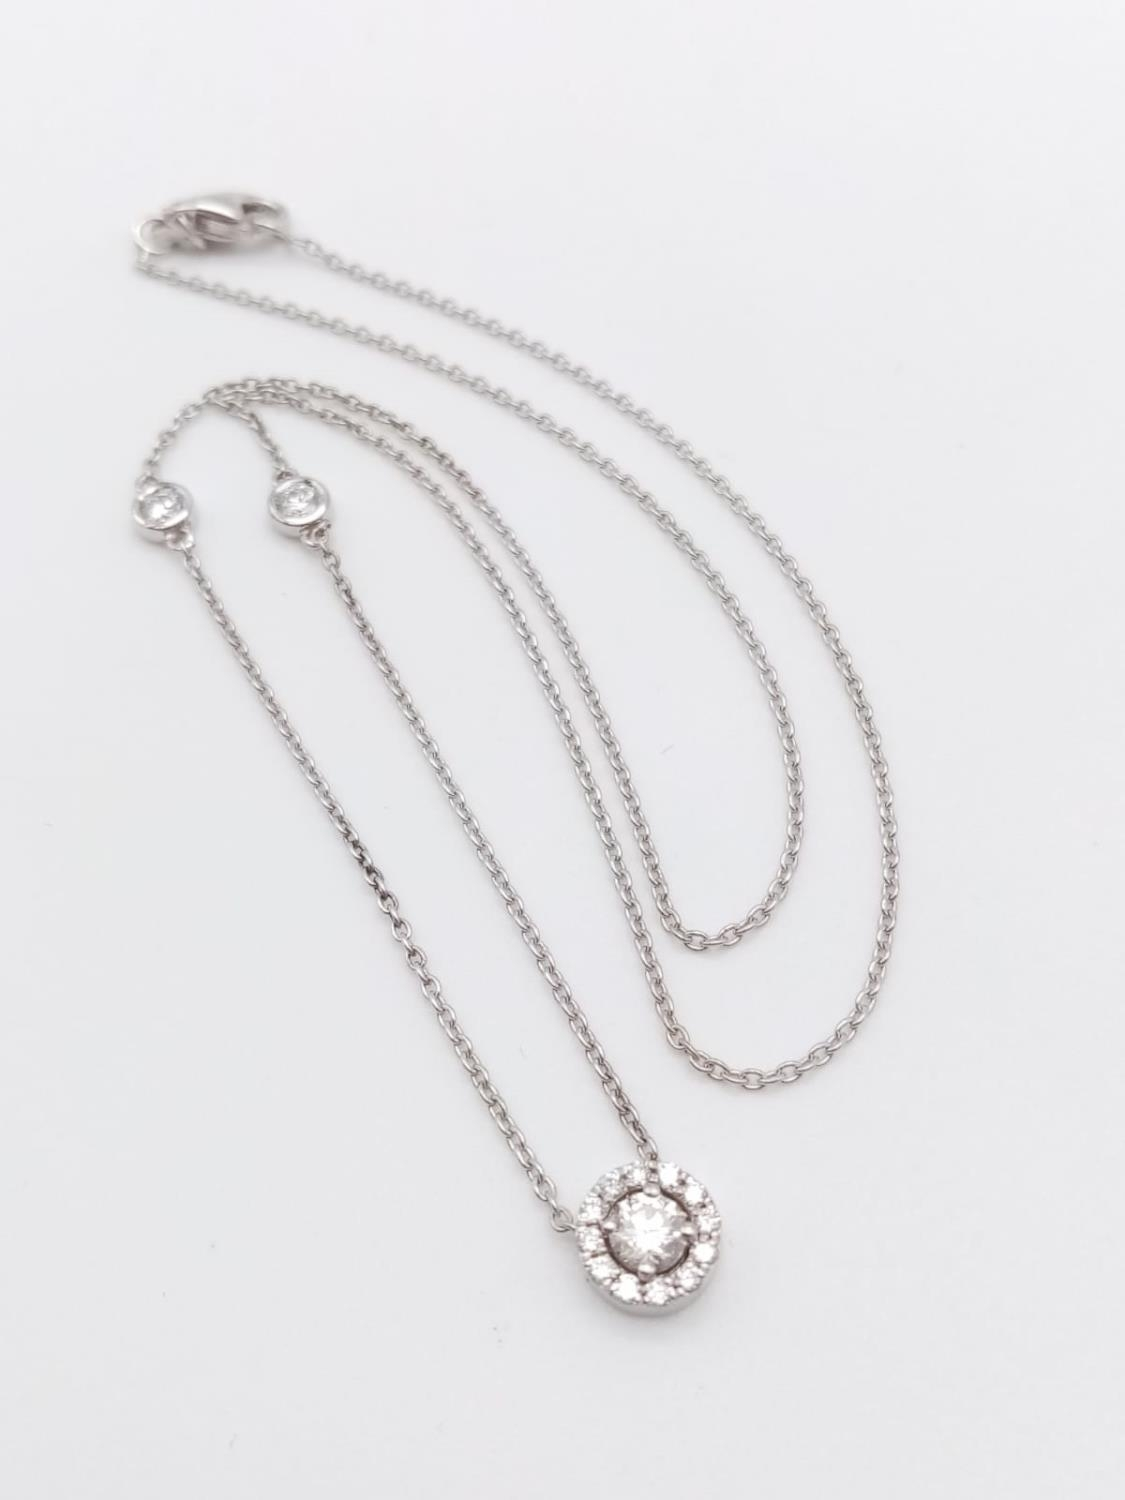 An elegant 14k white gold diamond necklace, weight 2.5g and approx 0.50ct diamonds chain 43cm long